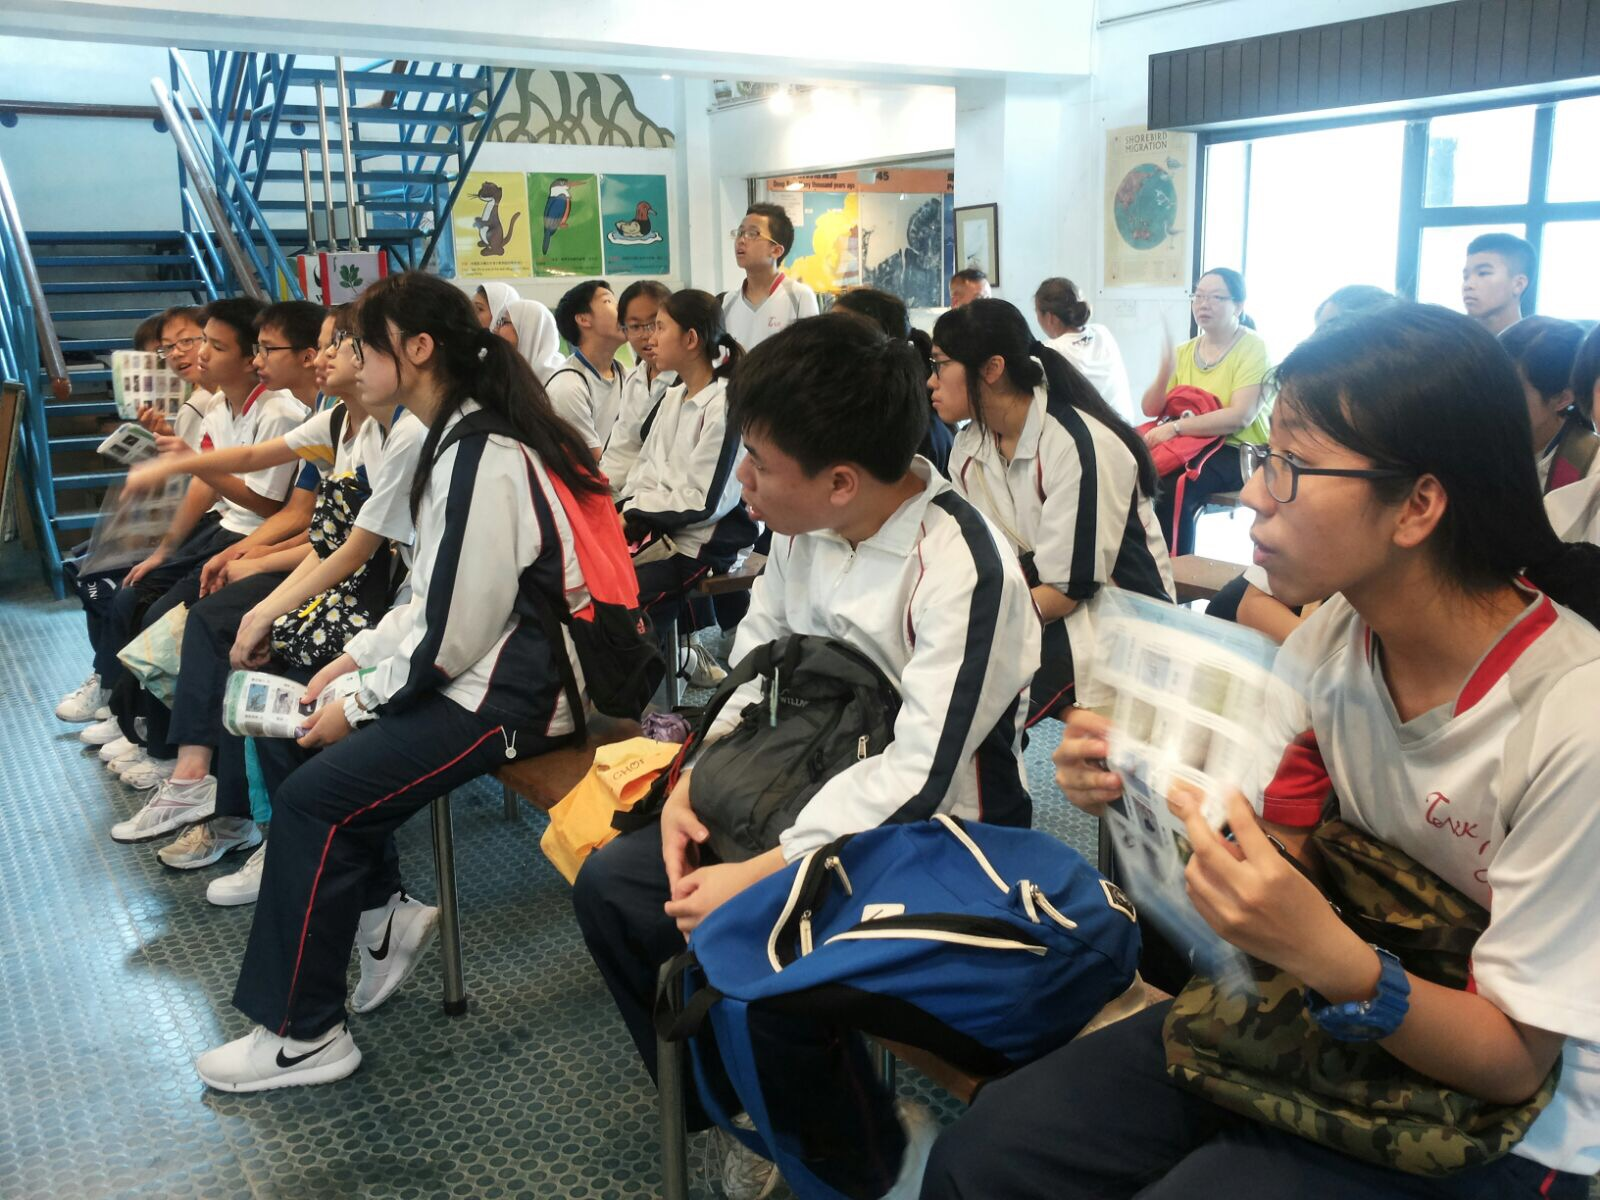 Students were very attentive in the briefing session.